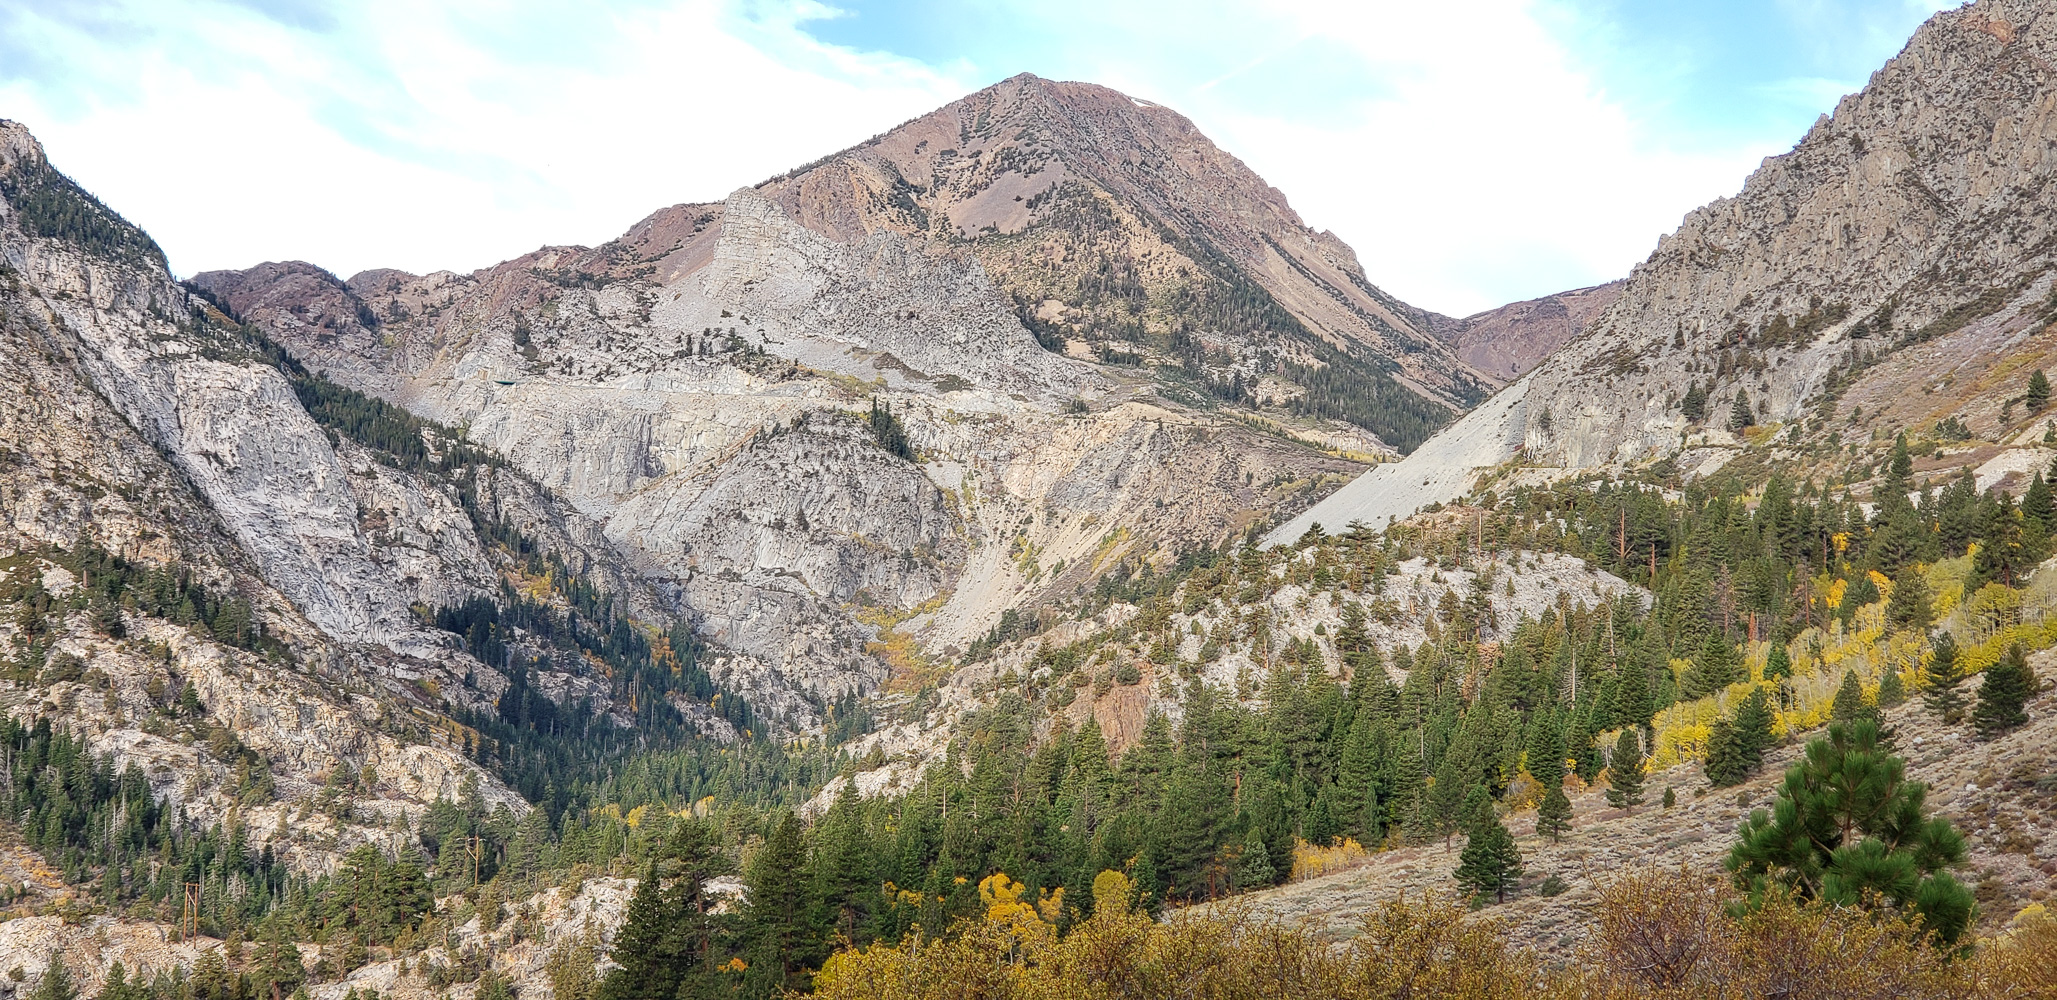 Heading up to the Tioga Pass from Lee Vining